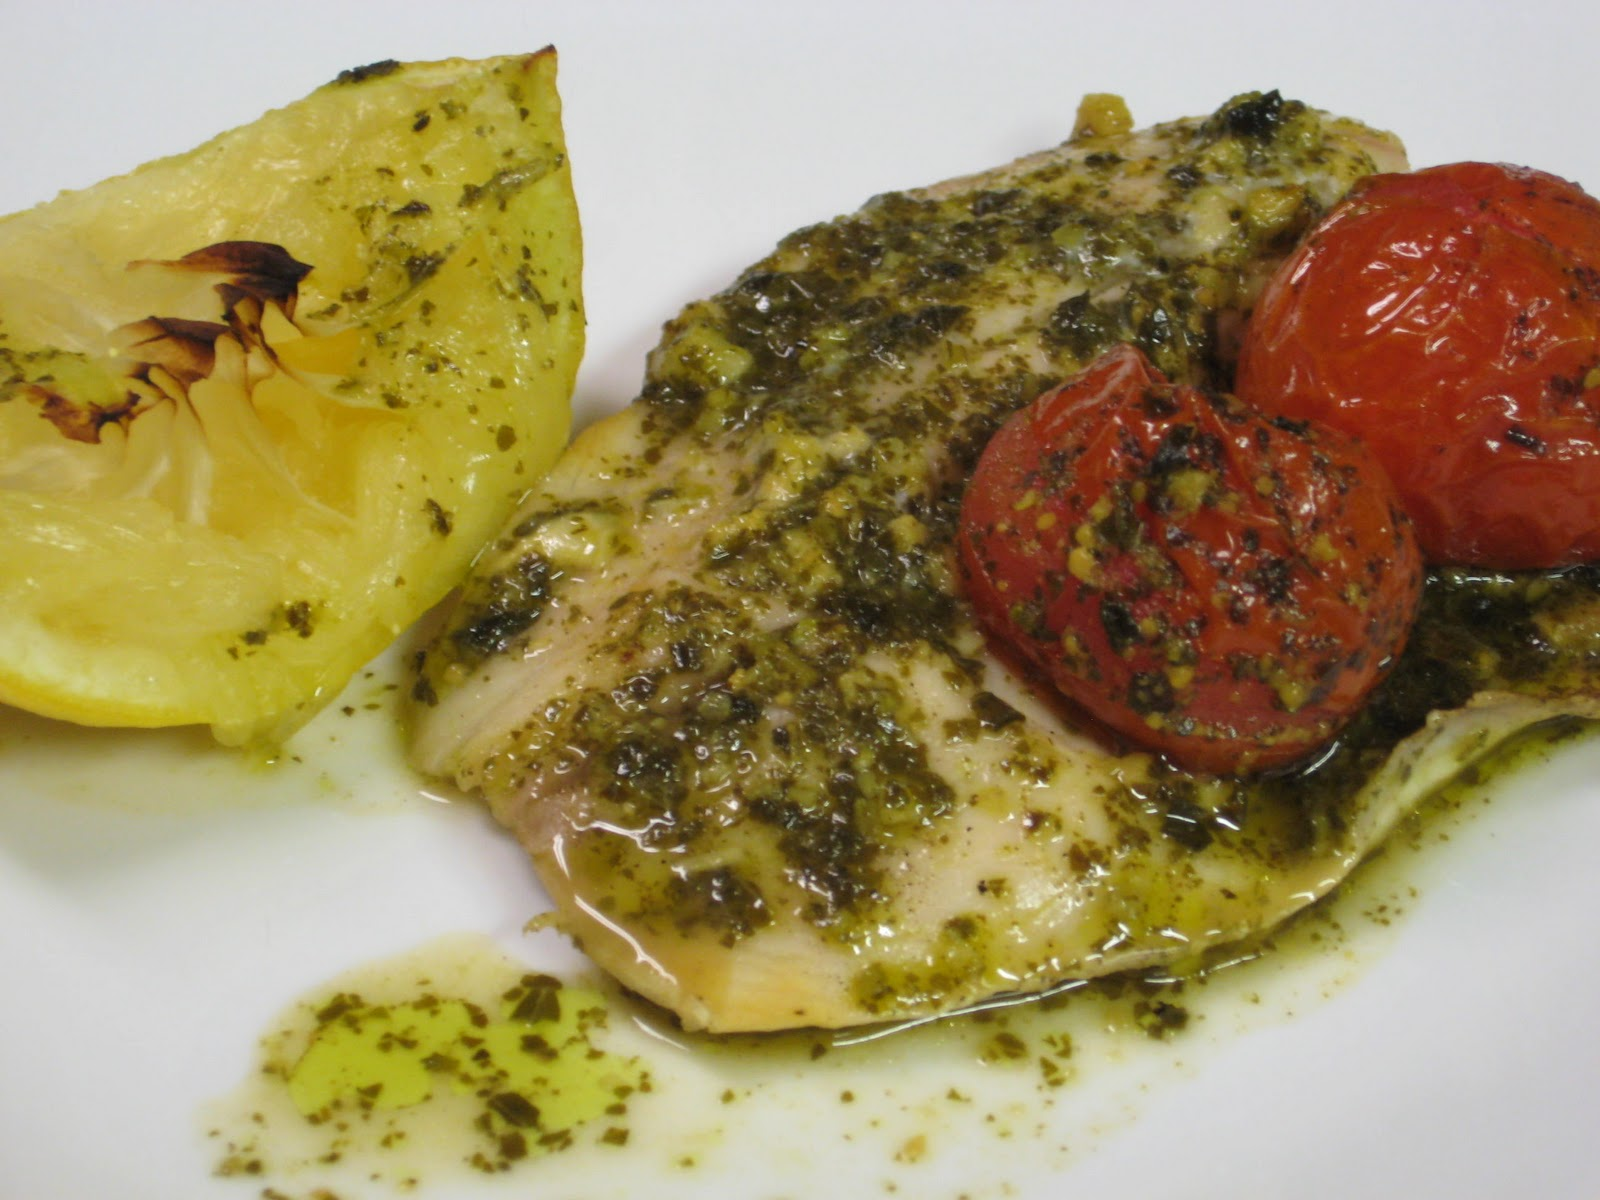 Gimmie S'More: Tilapia with Lemon Pesto and Oven Roasted Tomatoes